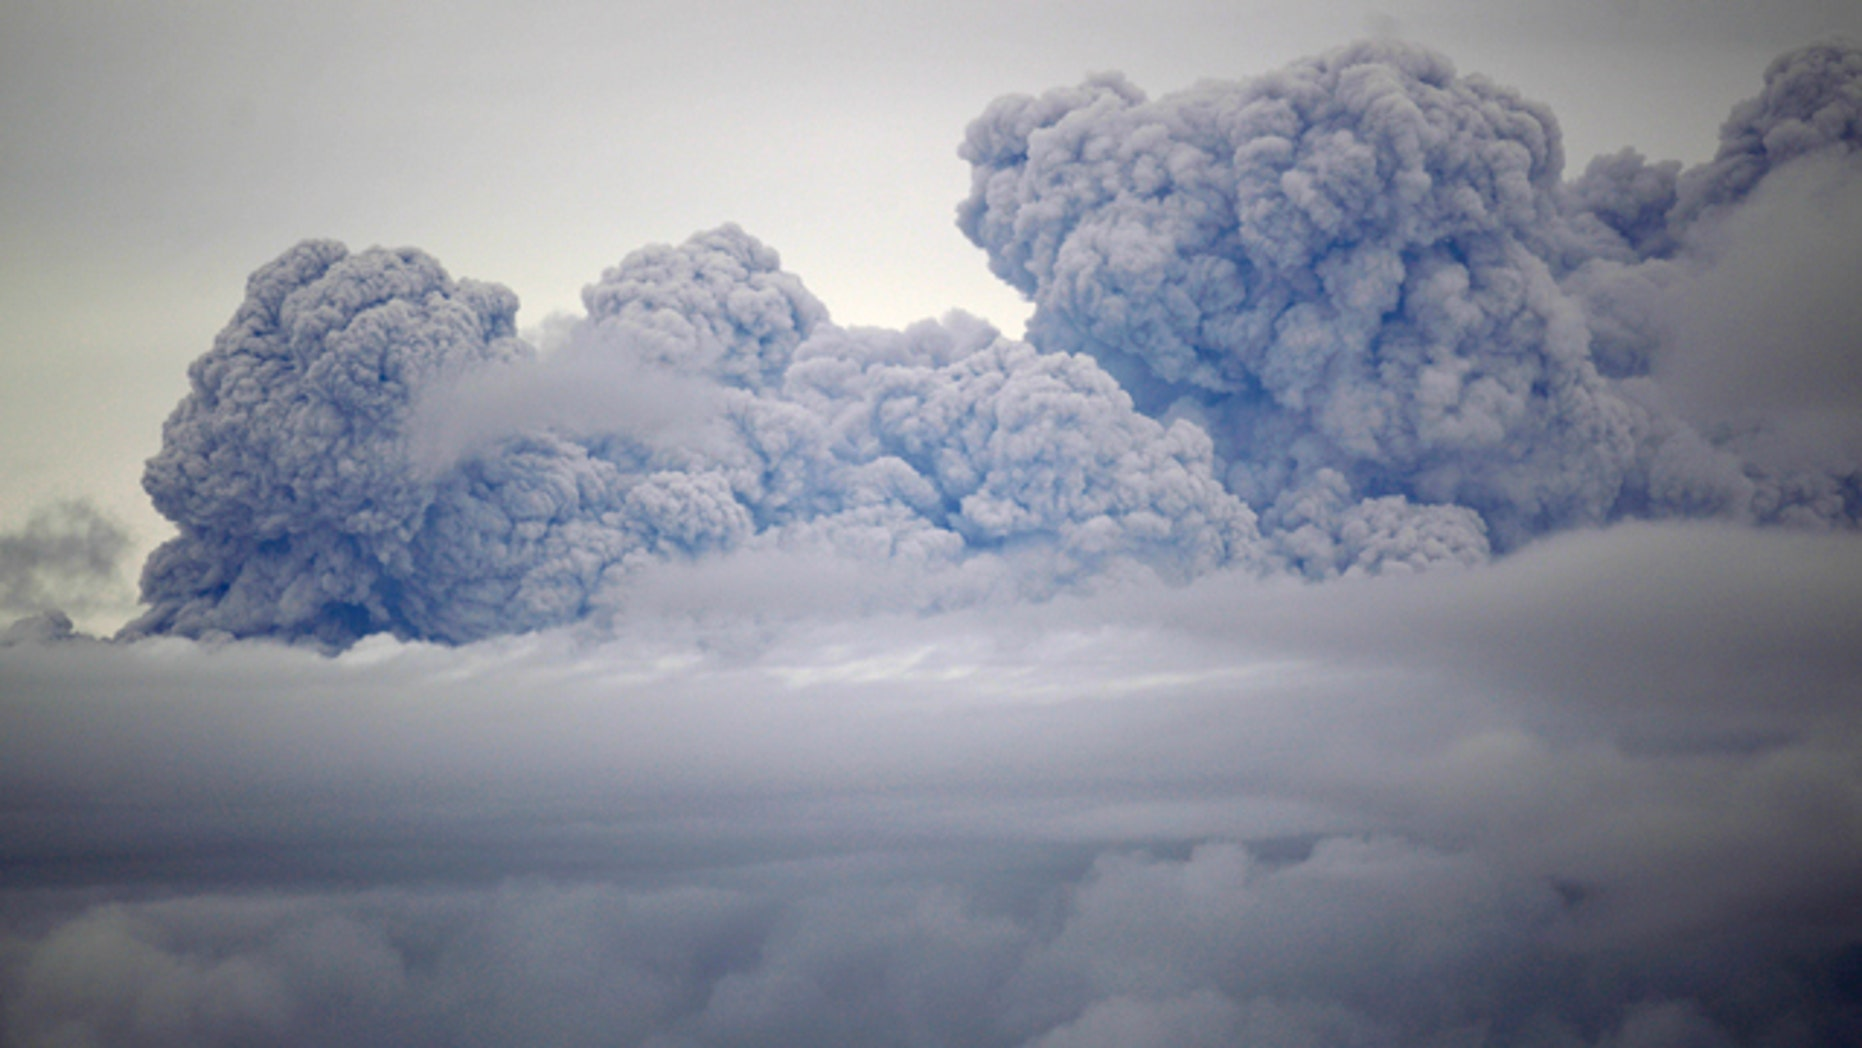 A cloud of volcanic ashes and smoke from the Puyehue-Cordon Caulle volcano is seen from Entrelagos, in southern Chile, Friday, June 10, 2011. The volcano erupted Saturday after remaining dormant for decades, causing the evacuation of about 3,500 people in the nearby area and carrying ash across the Andes to Argentina. (AP Photo/Roberto Candia)